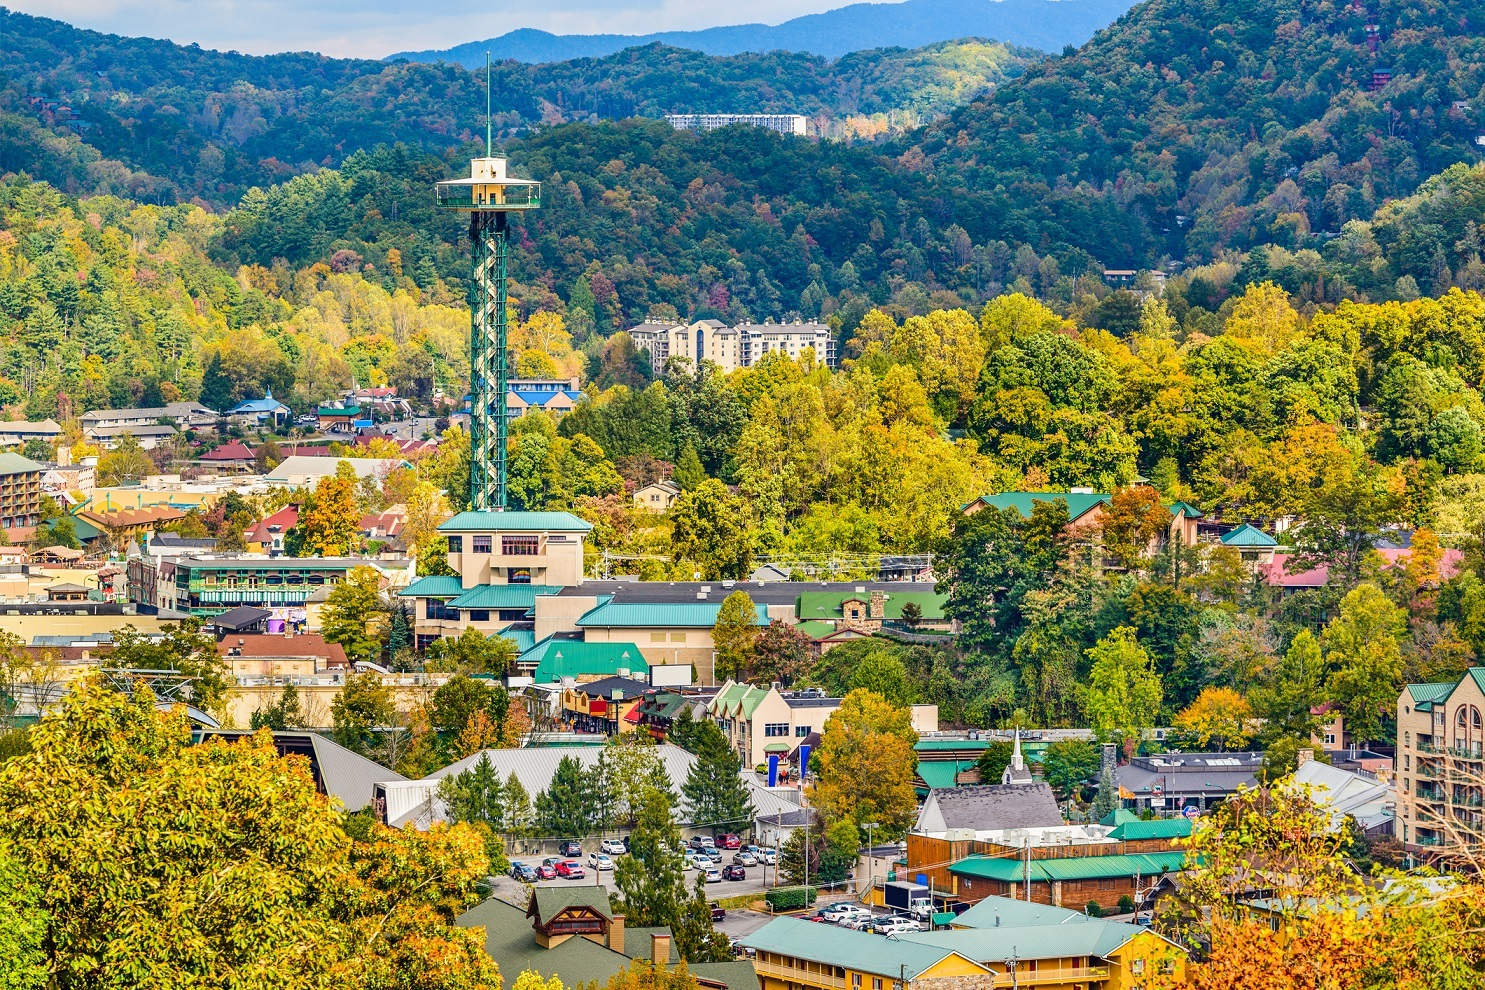 Gatlinburg Tennessee